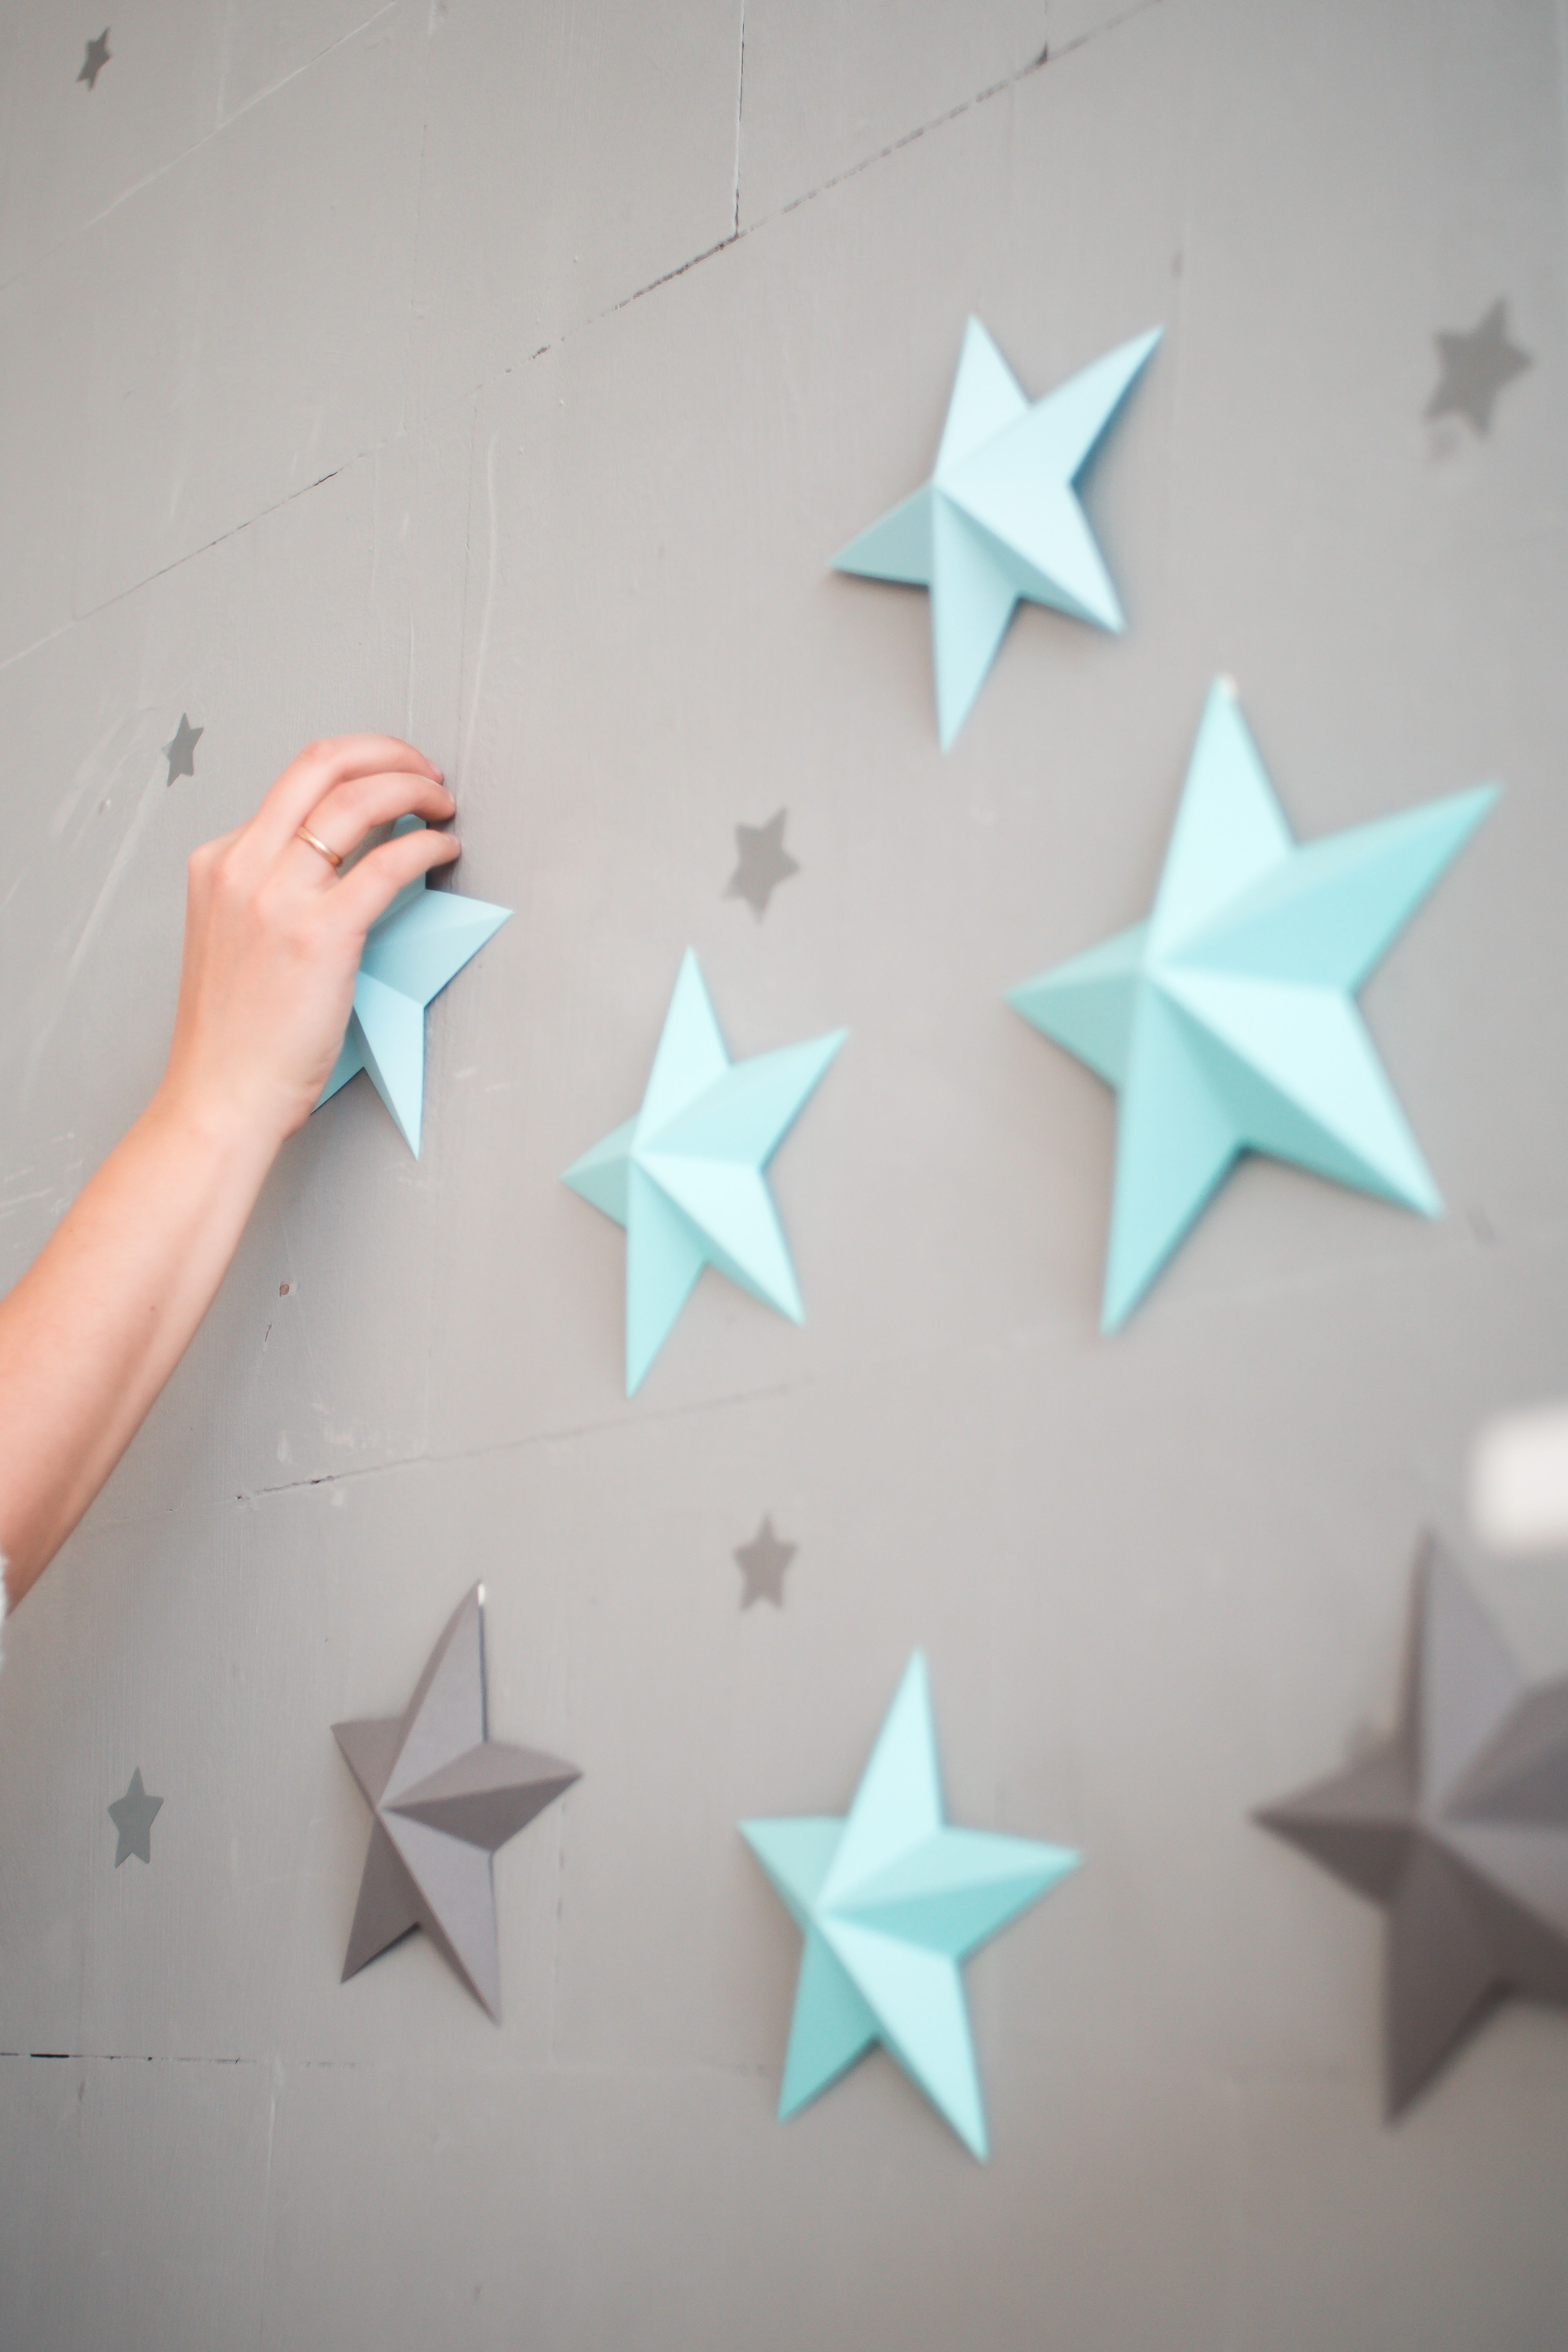 Twinkle Twinkle Little Star 3d Paper Stars Set Nursery Decor For Cute Photos Paper Stars Are Amazing Ide Blue